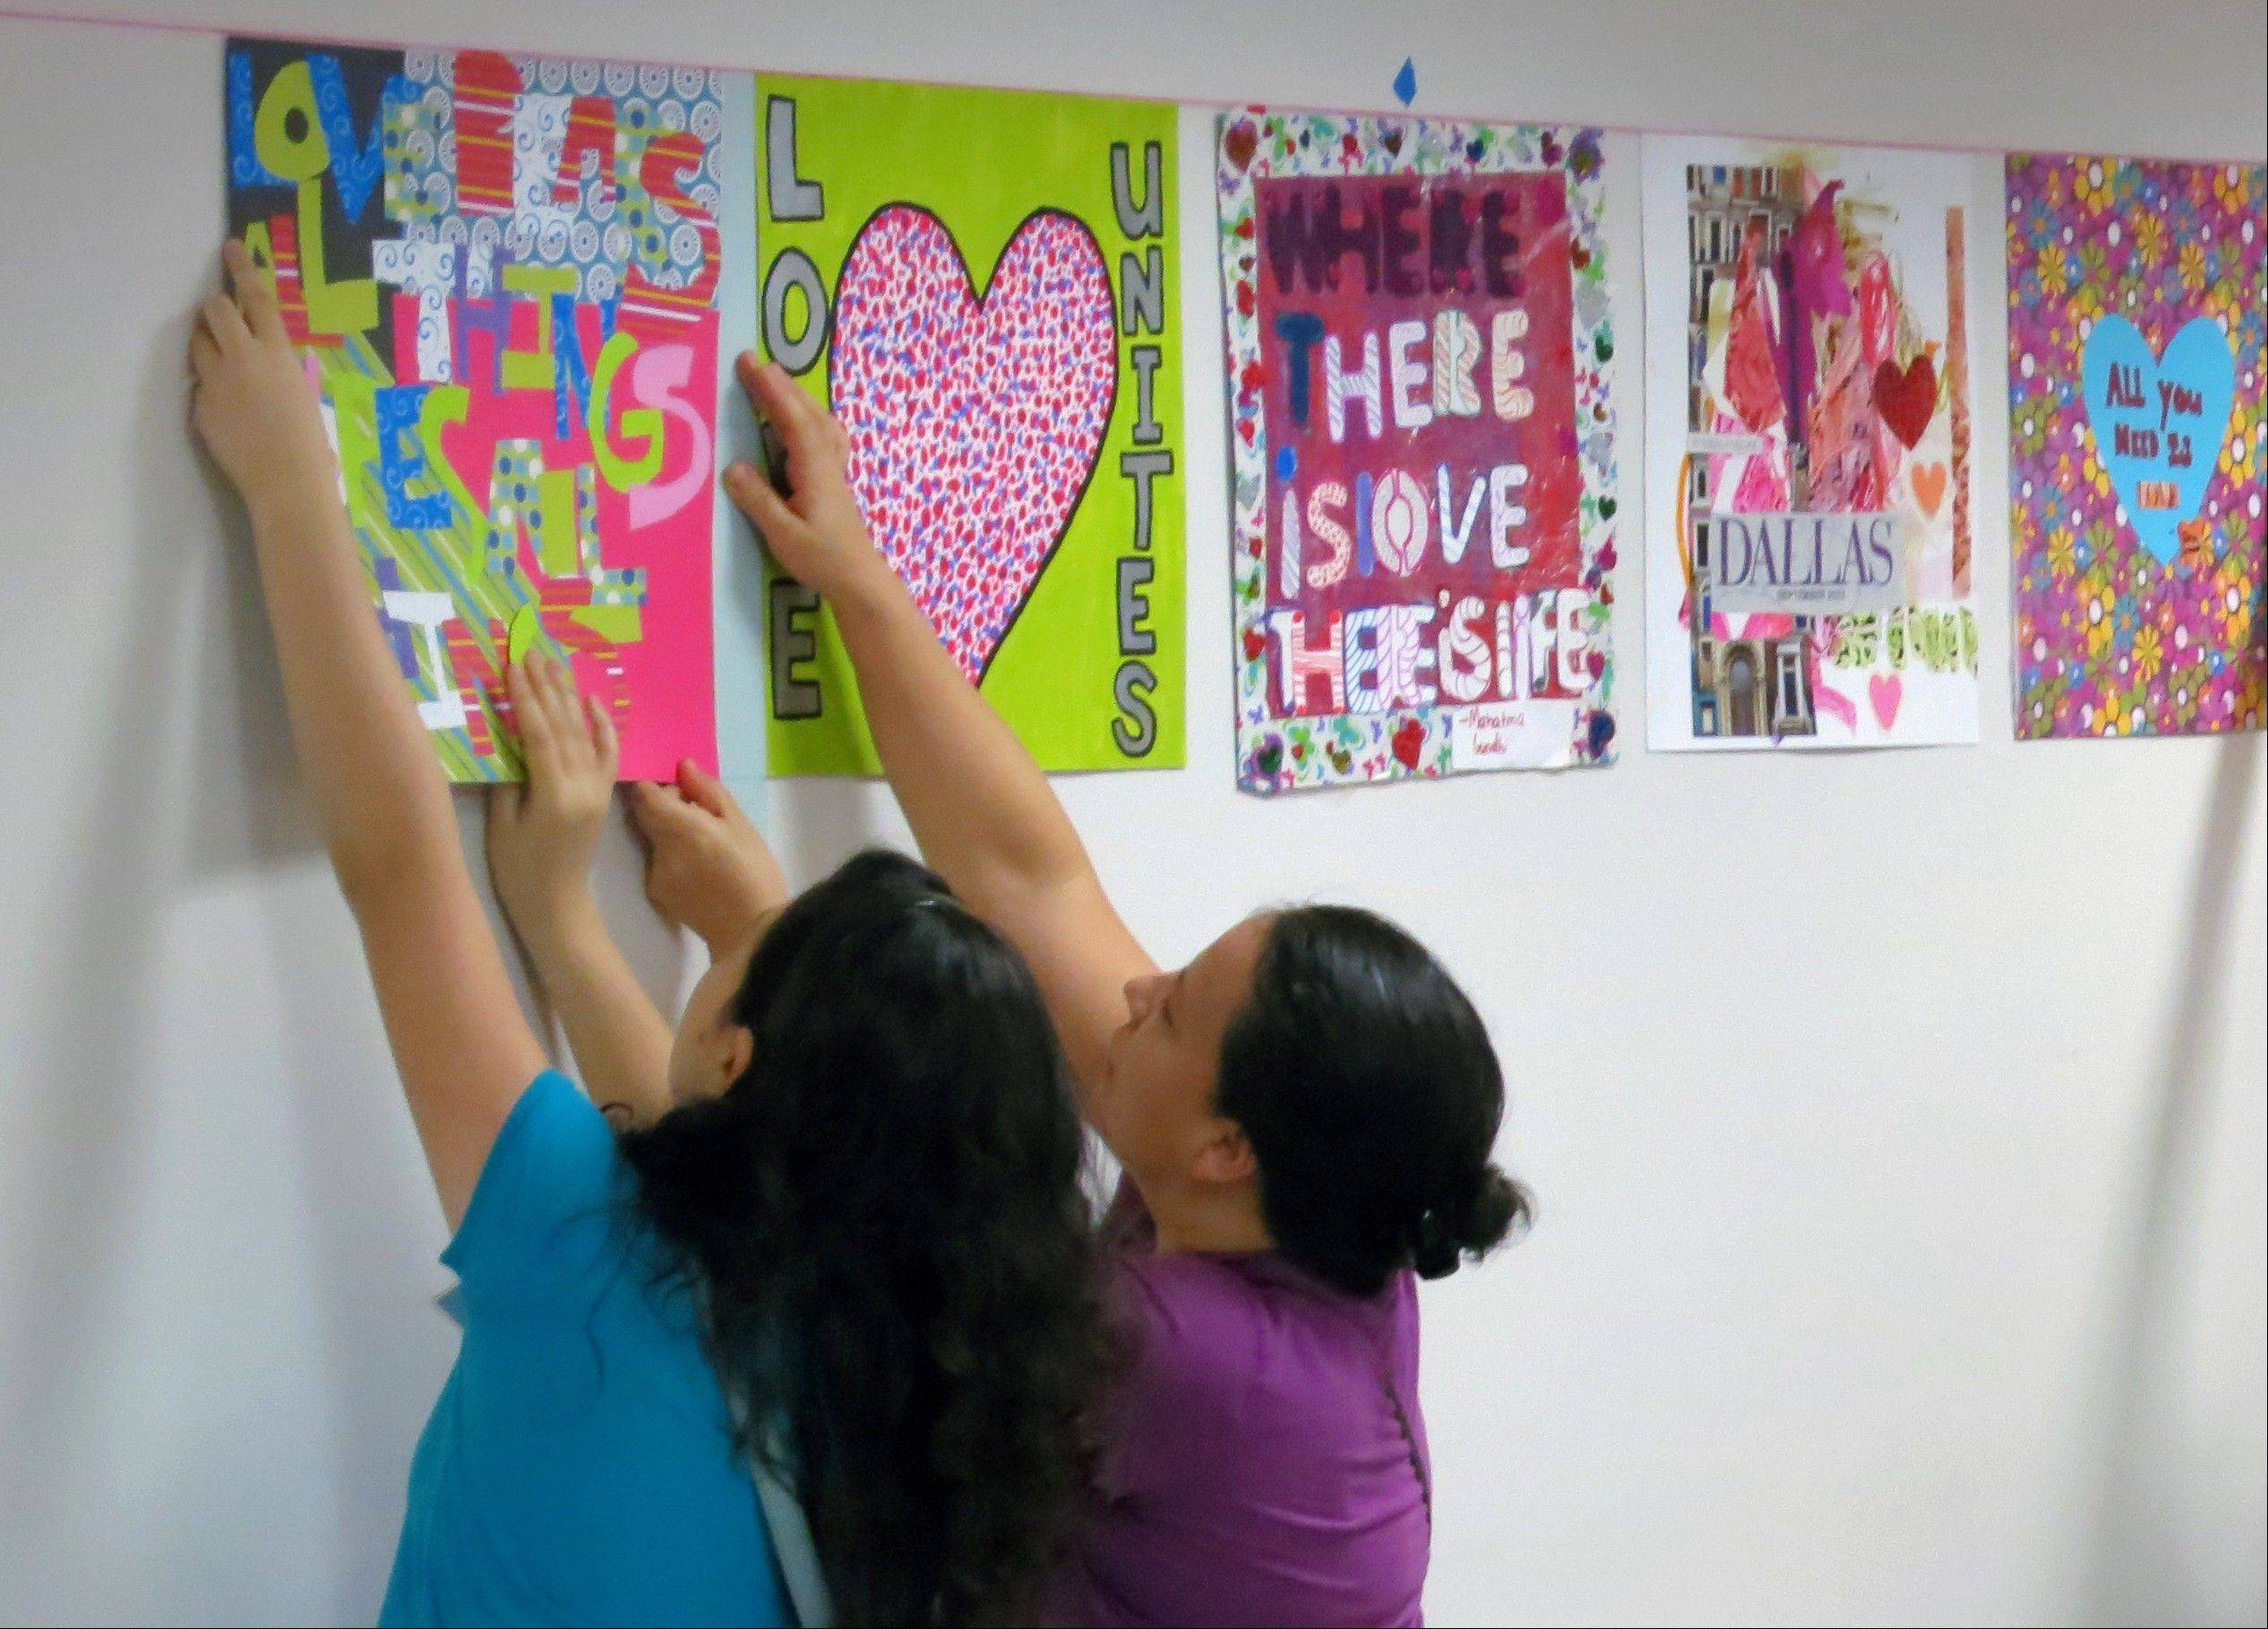 Brenda Castaneda, left, and Irma Castaneda help the nonprofit art organization 29 Pieces hang art in the hallways at Parkland Memorial Hospital in Dallas.